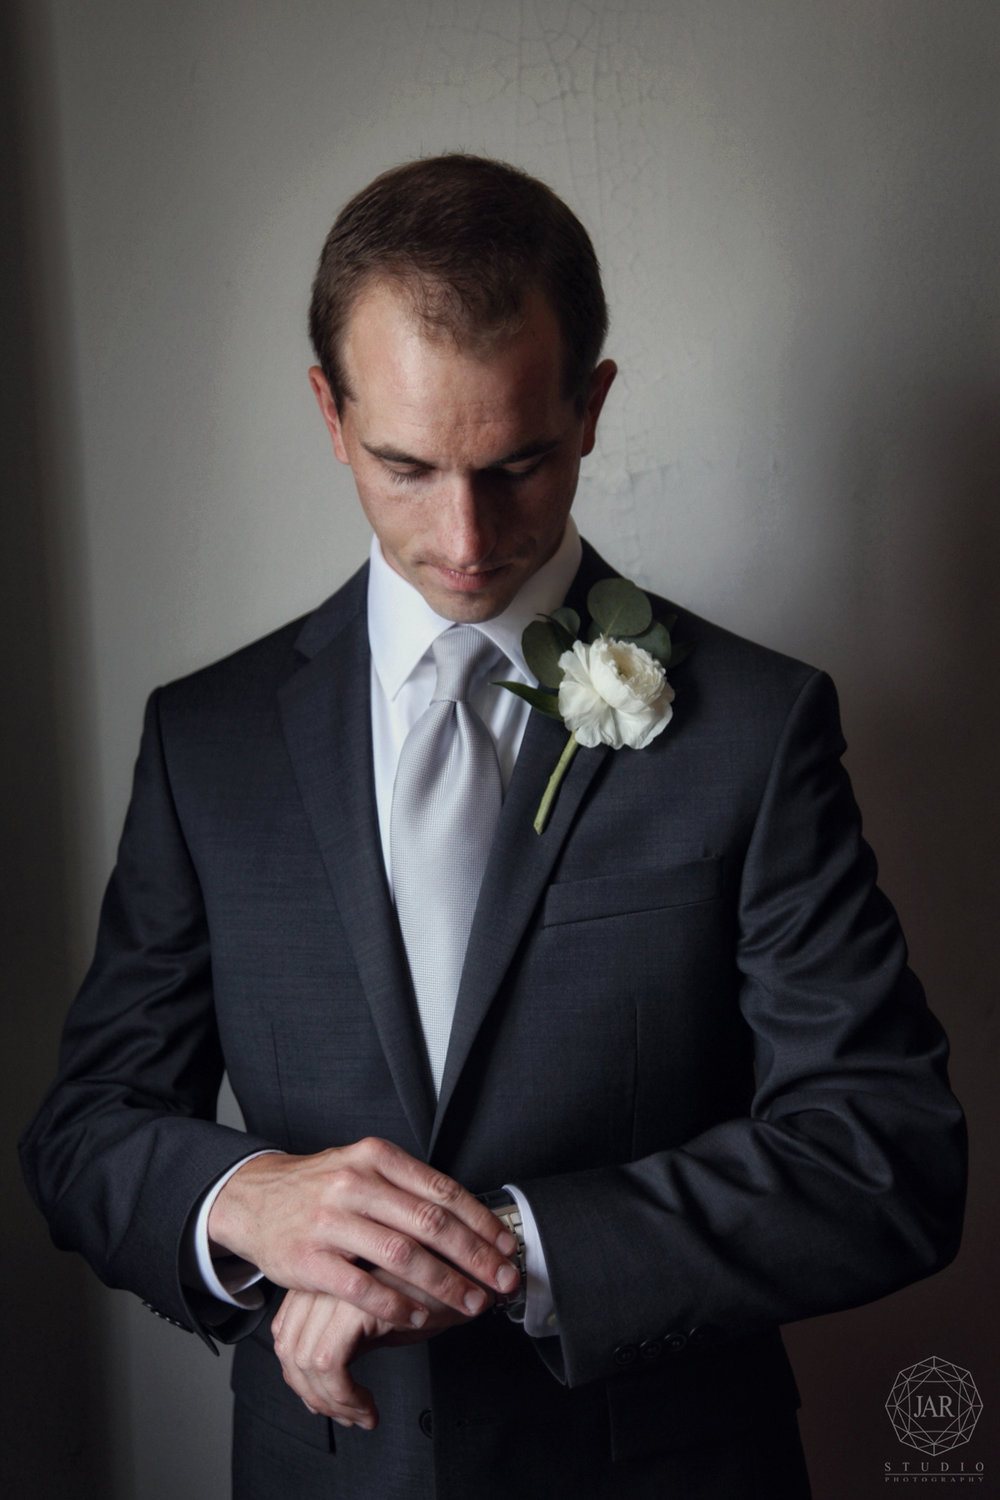 07-groom-gray-suit-silver-tie-jarstudio-orlando-weddings.JPG